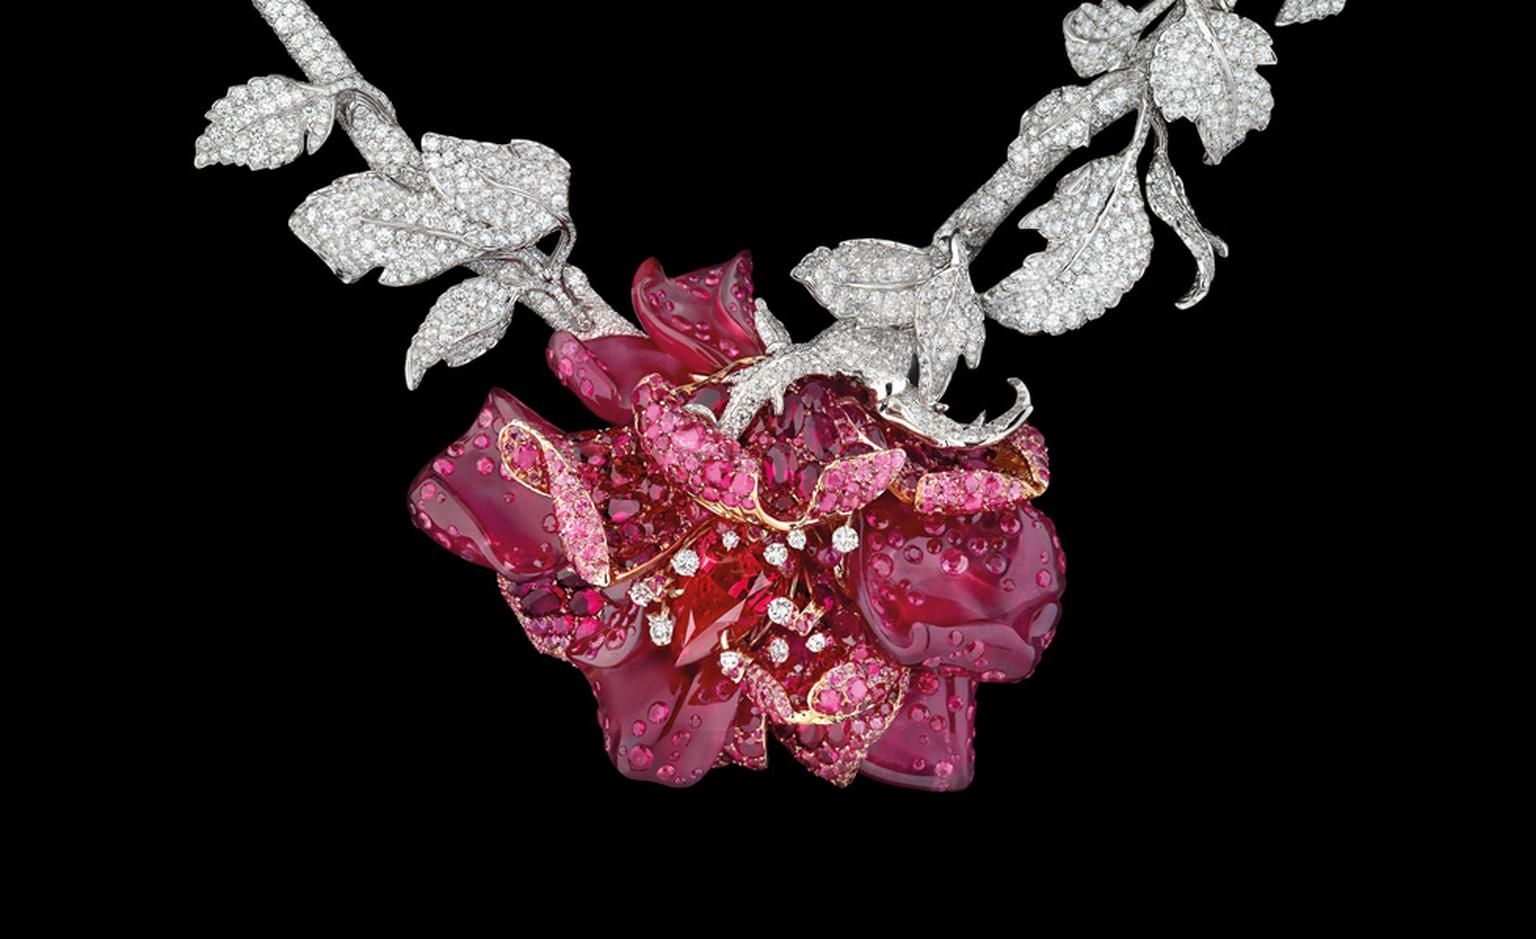 DIOR FINE JEWELLERY LE BAL DES ROSES BAL DE MAI NECKLACE WHITE AND YELLOW GOLD, DIAMONDS, FANCY BROWN DIAMOND, FANCY PINK, LILAC AND MAUVE DIAMONDS, PINK OPAL AND EMERALDS.